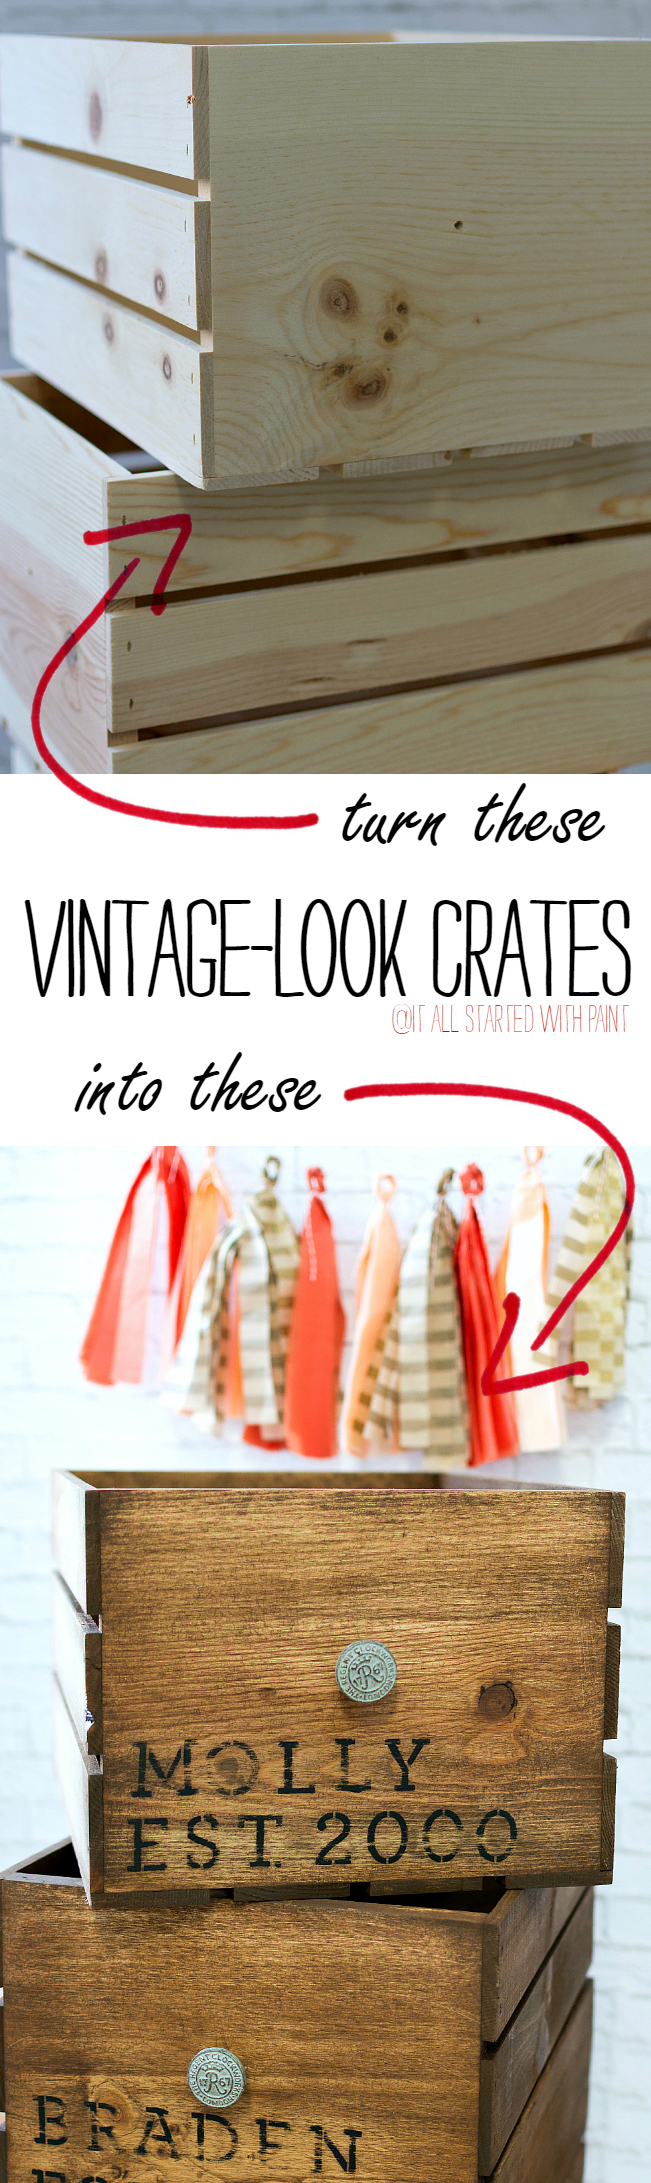 How To Age New Crates to Look Vintage